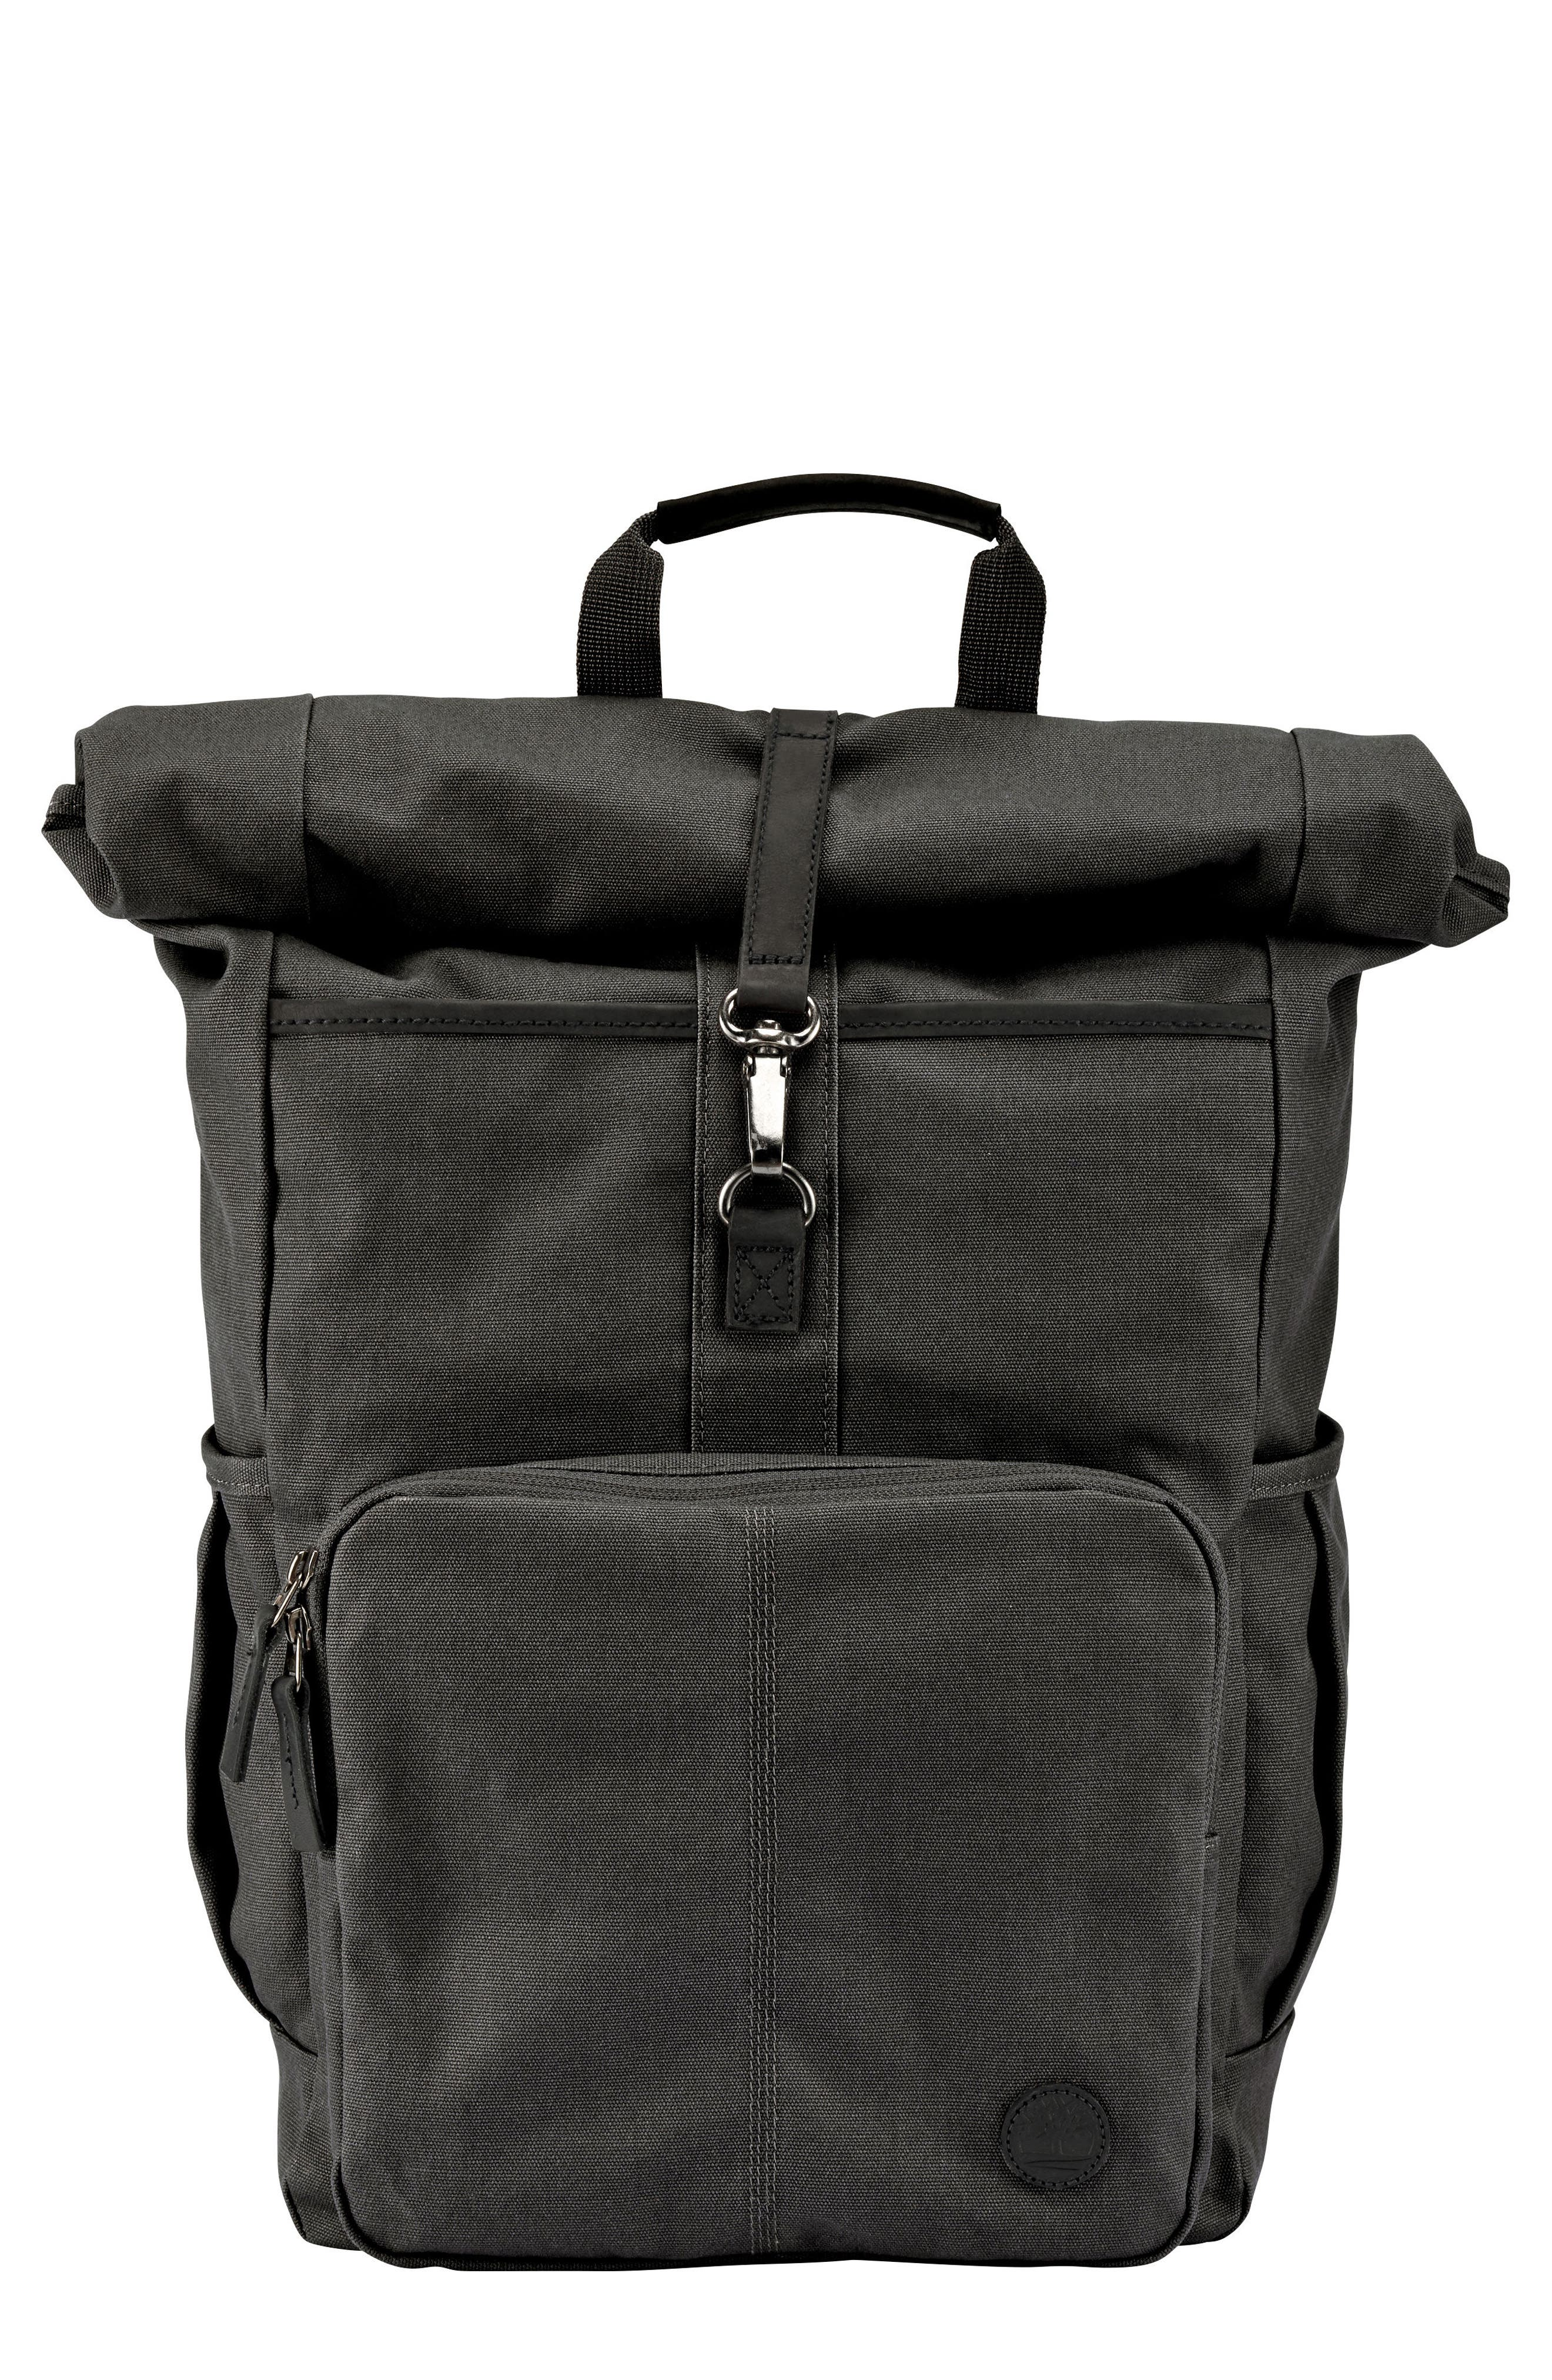 Walnut Hill Rolltop Backpack,                         Main,                         color, 008